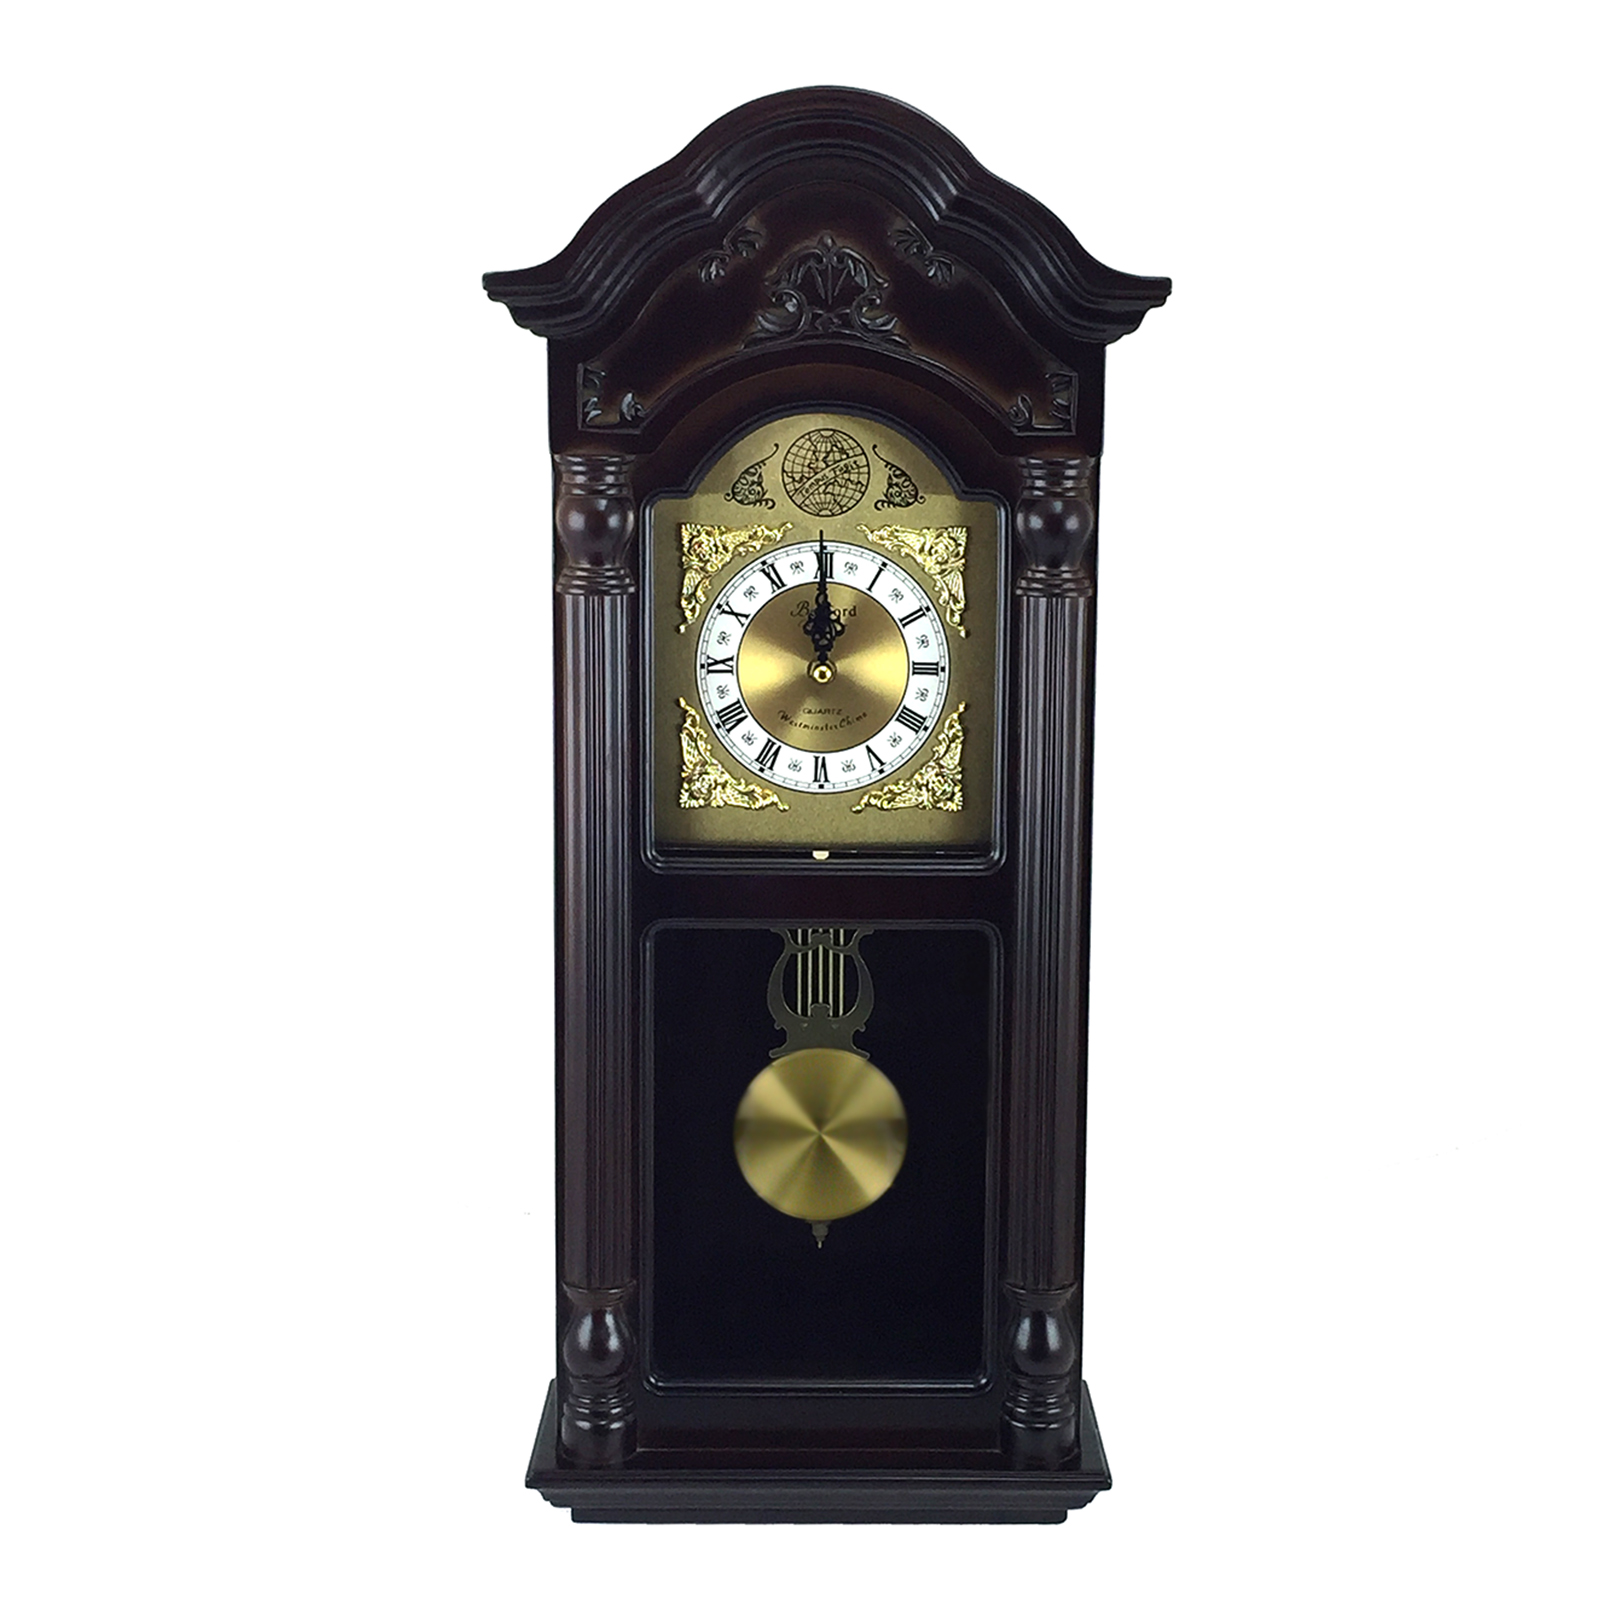 "Bedford Clock Collection 25.5"" Antique Mahogany Cherry Oak Chiming Wall Clock with... by Bedford Clock Collection"